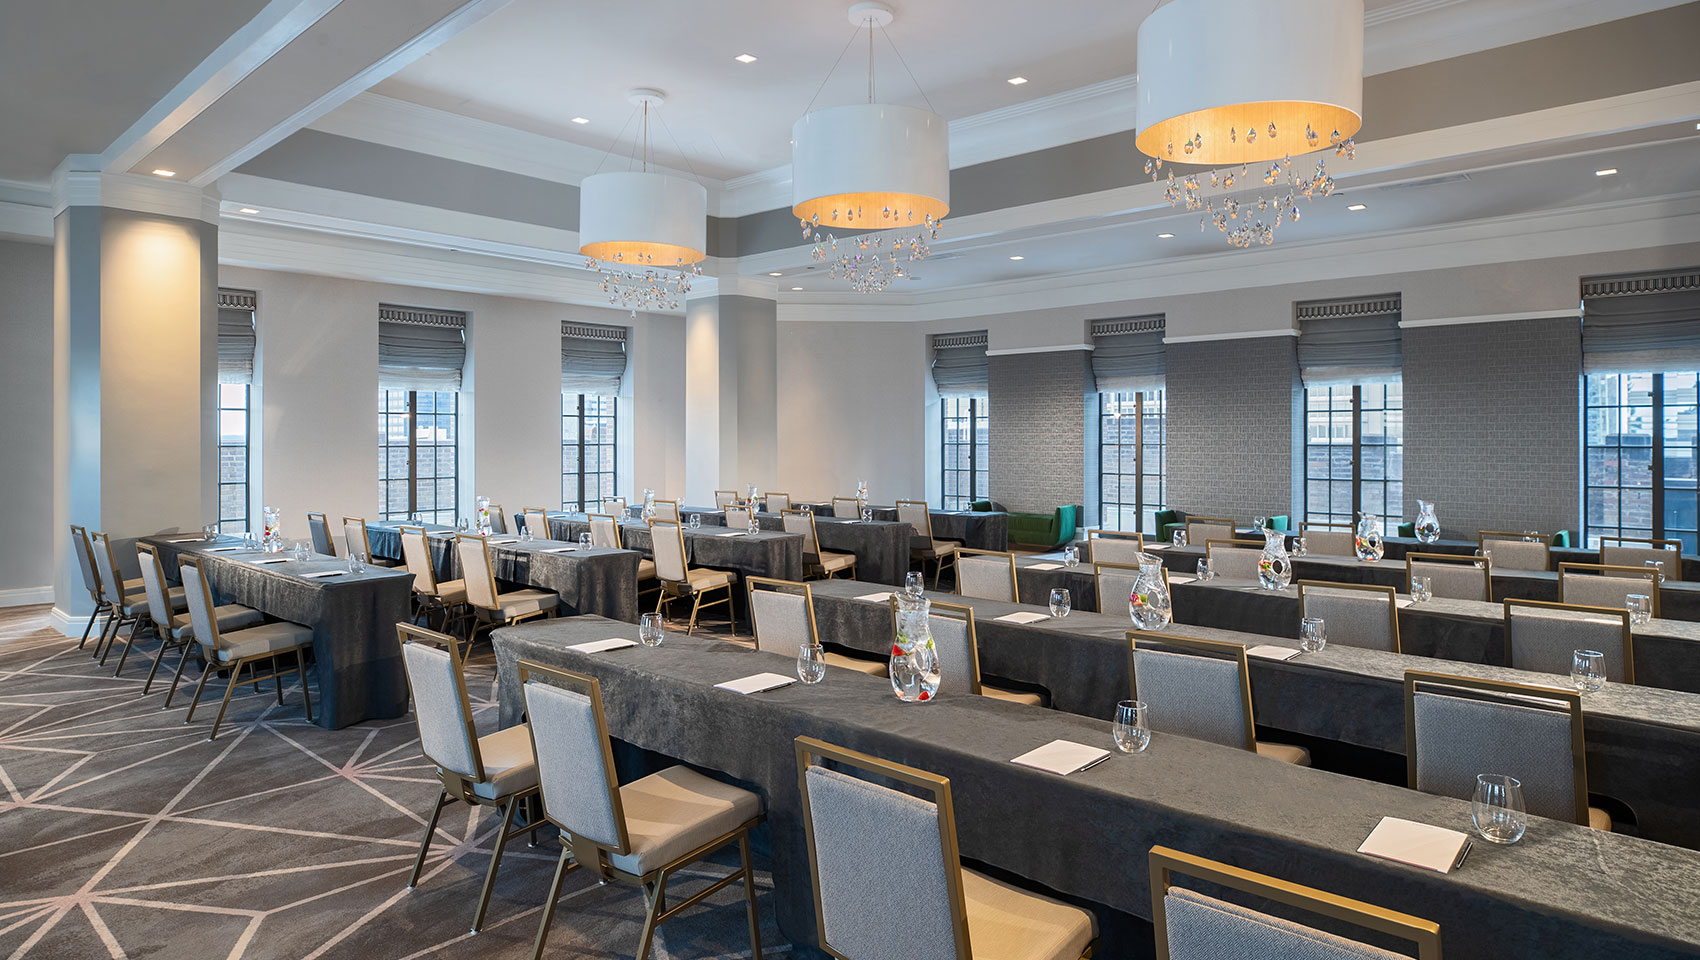 Classroom setup at Kimpton Hotel Palomar Philadelphia's ballroom showing long tables with notepads all facing the same direction within a room surrounded with windows that overlook city views